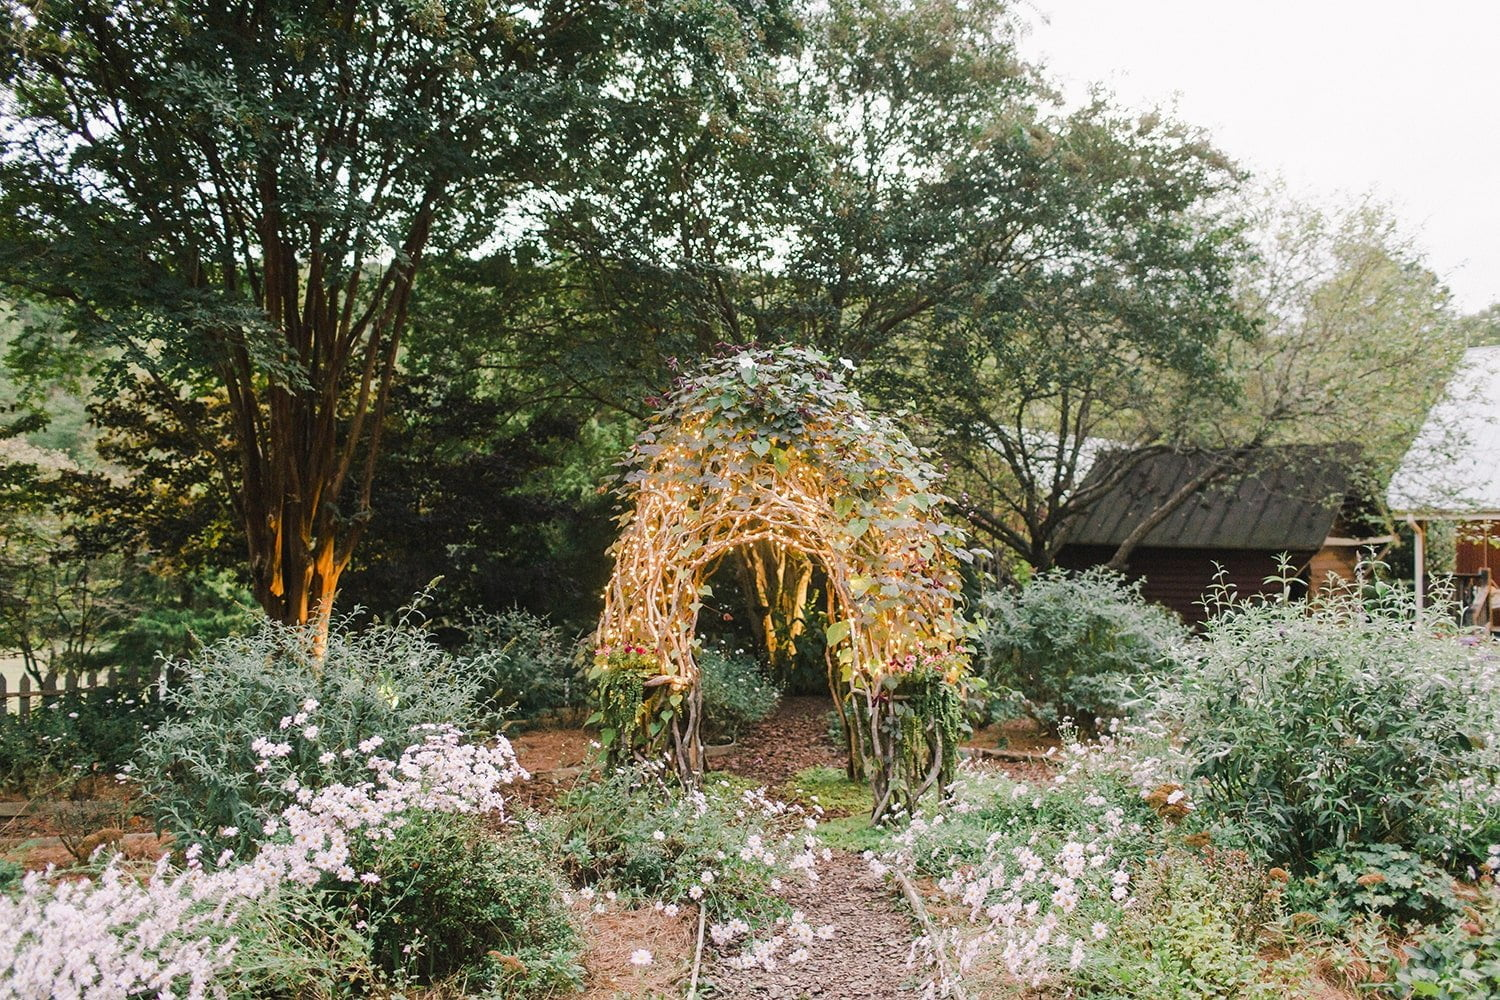 outside image of the garden